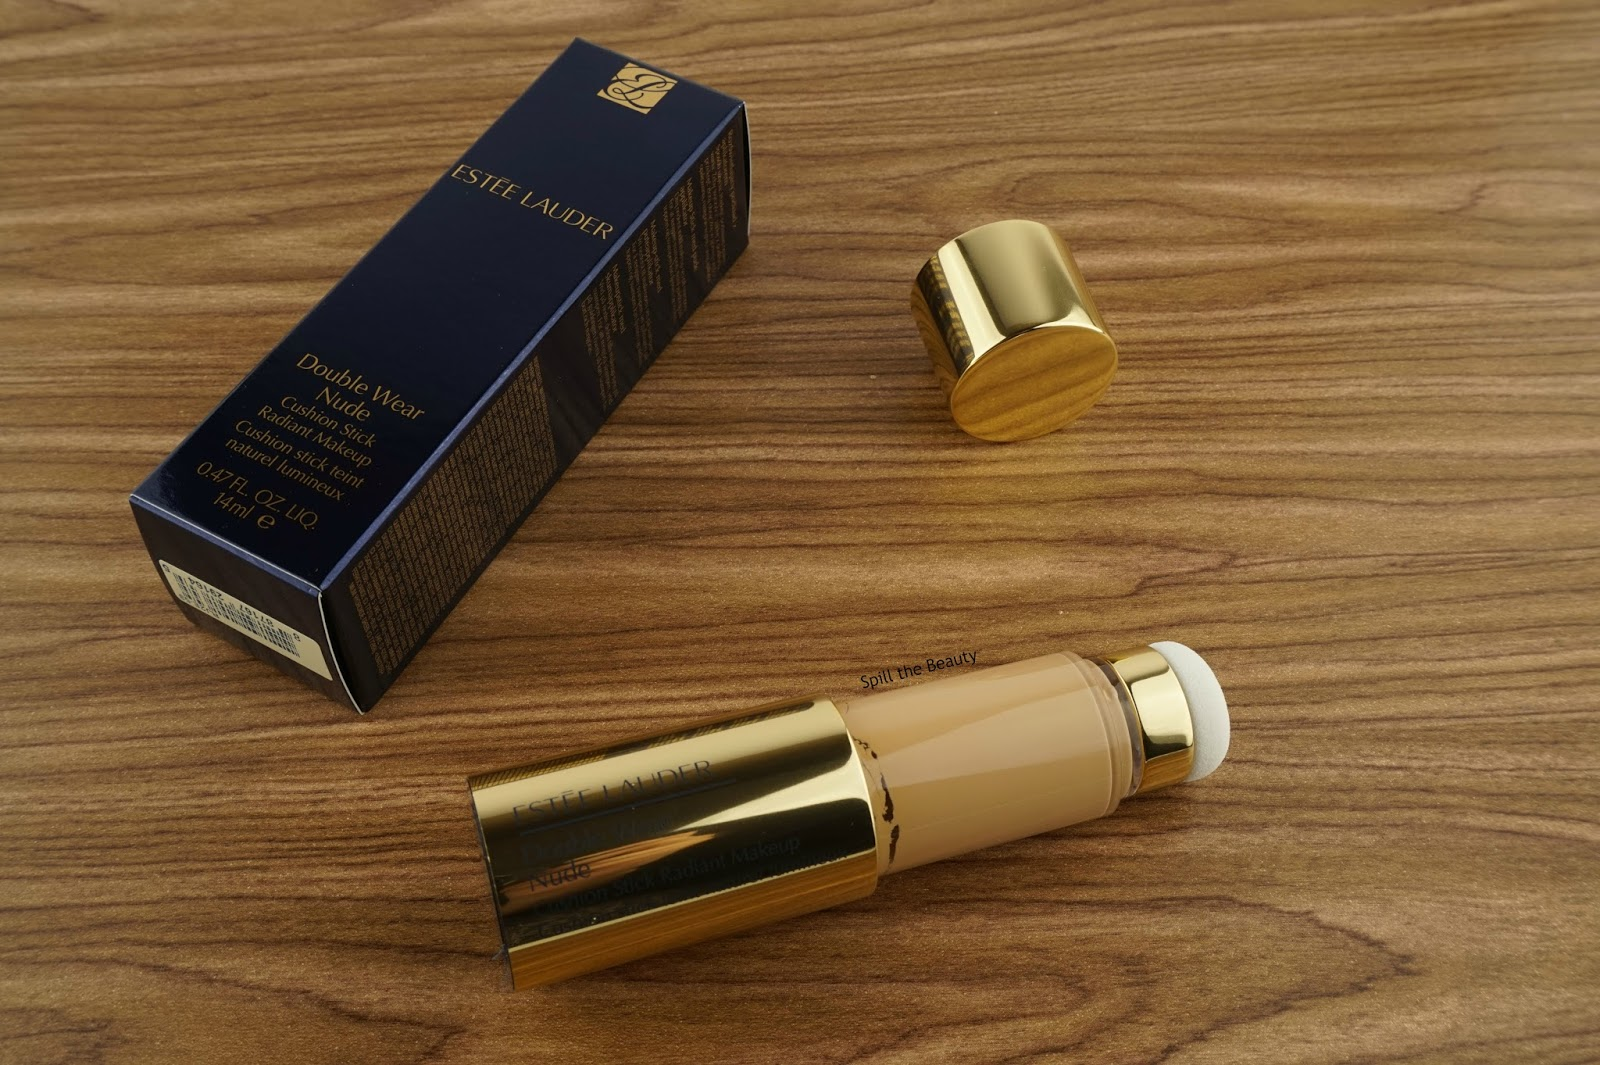 estee lauder double wear nude cushion stick radiant makeup 2w1 dawn review